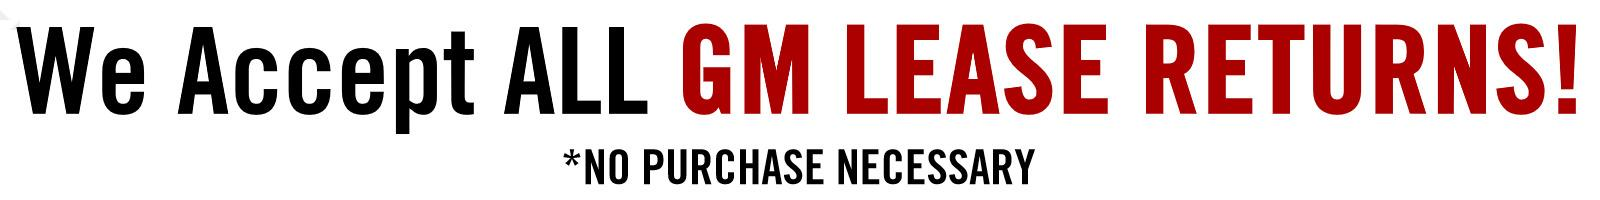 we accept  ALL GM LEASE RETURNS